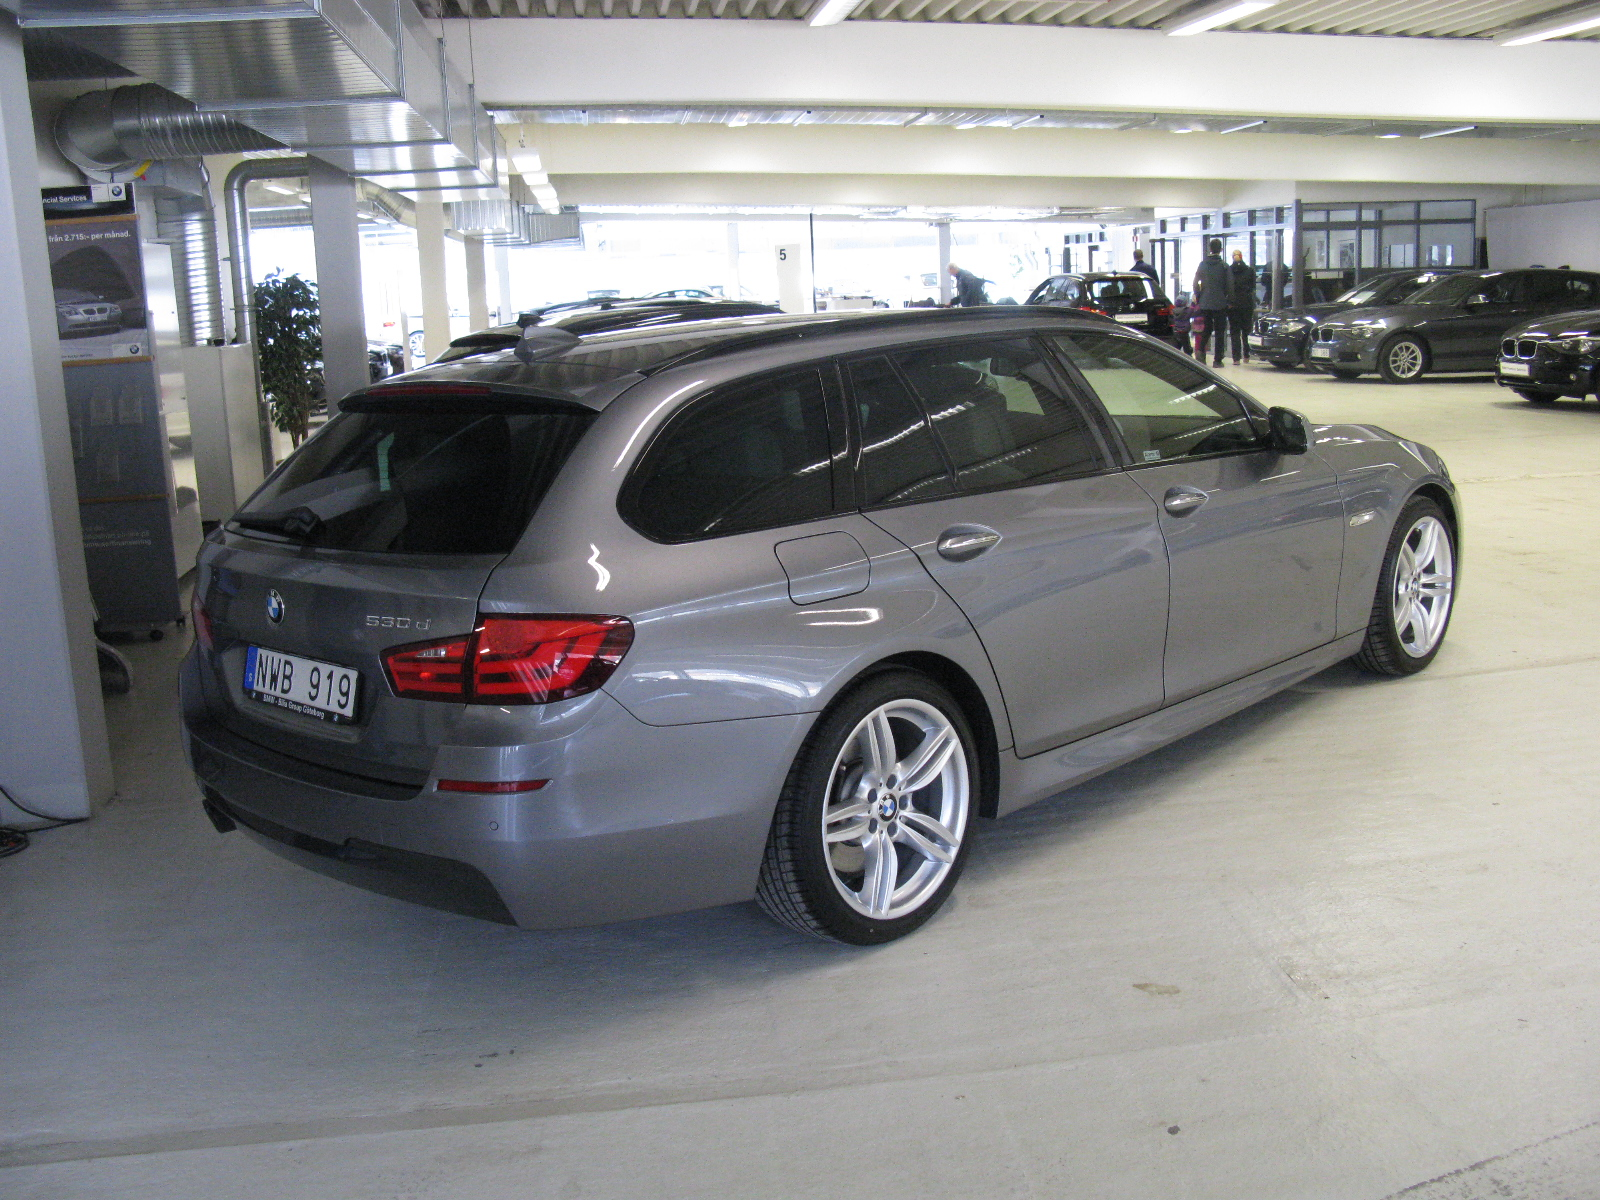 file bmw 530d touring m sport f11 8625055149 jpg wikimedia commons. Black Bedroom Furniture Sets. Home Design Ideas